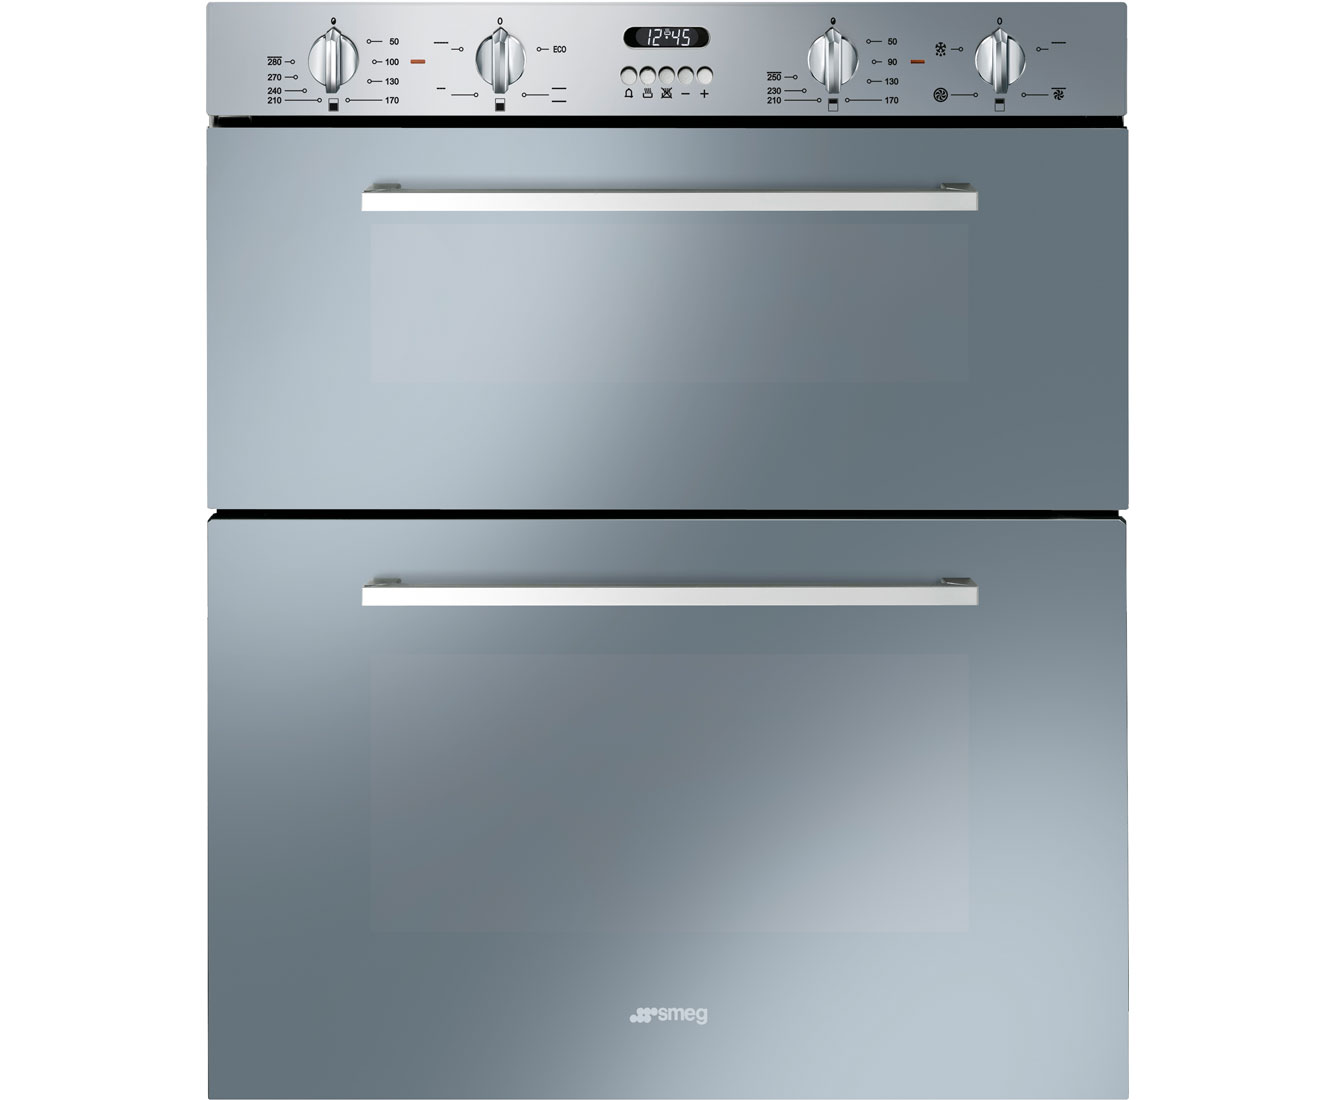 Smeg cucina dusf44x built under double oven stainless steel for Cucina smeg